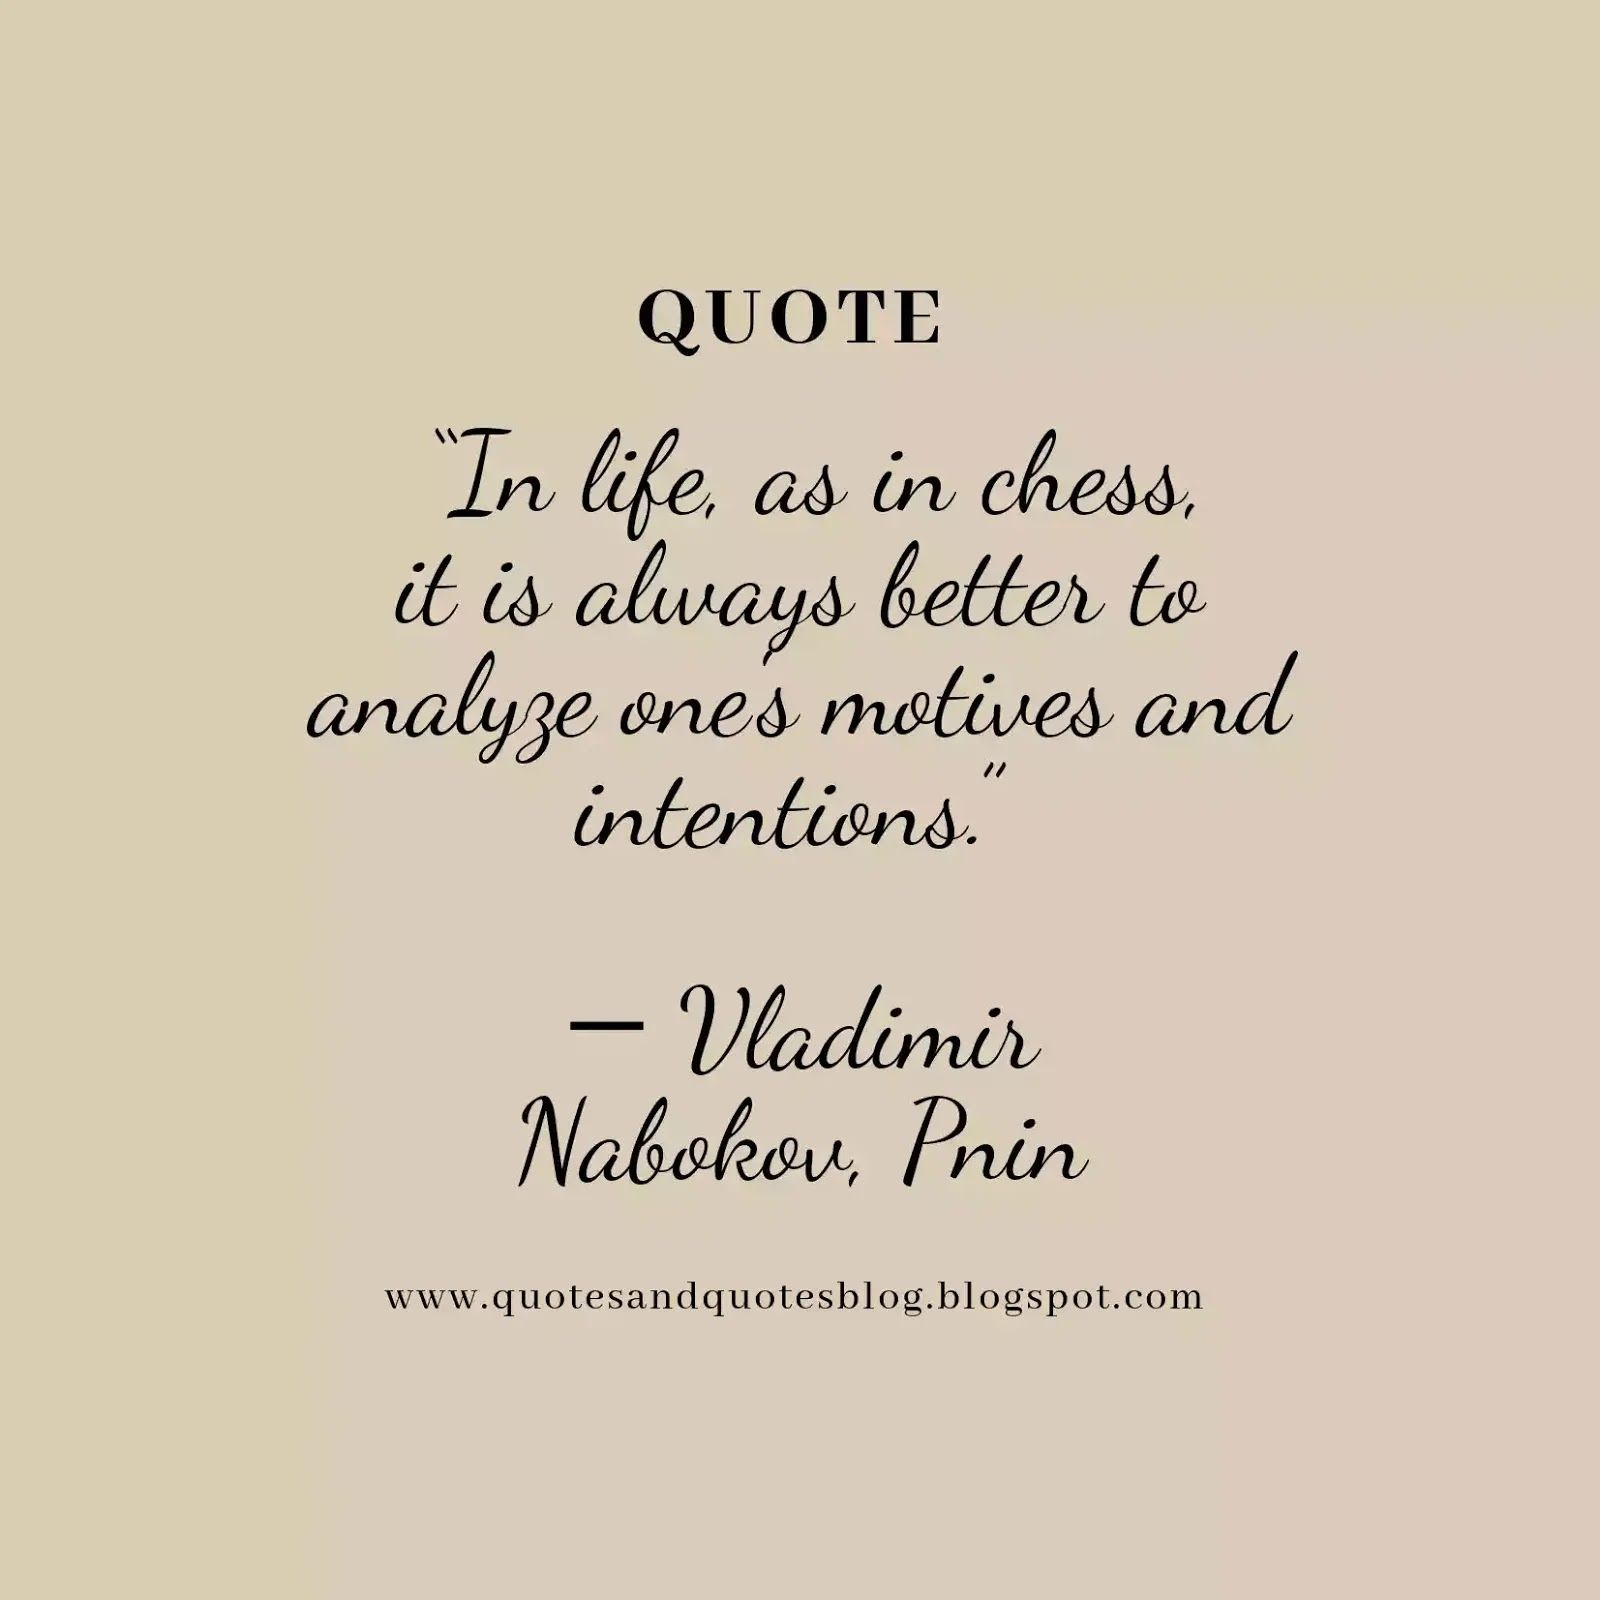 Top Chess Quotes by Quotes And Quotes Blog